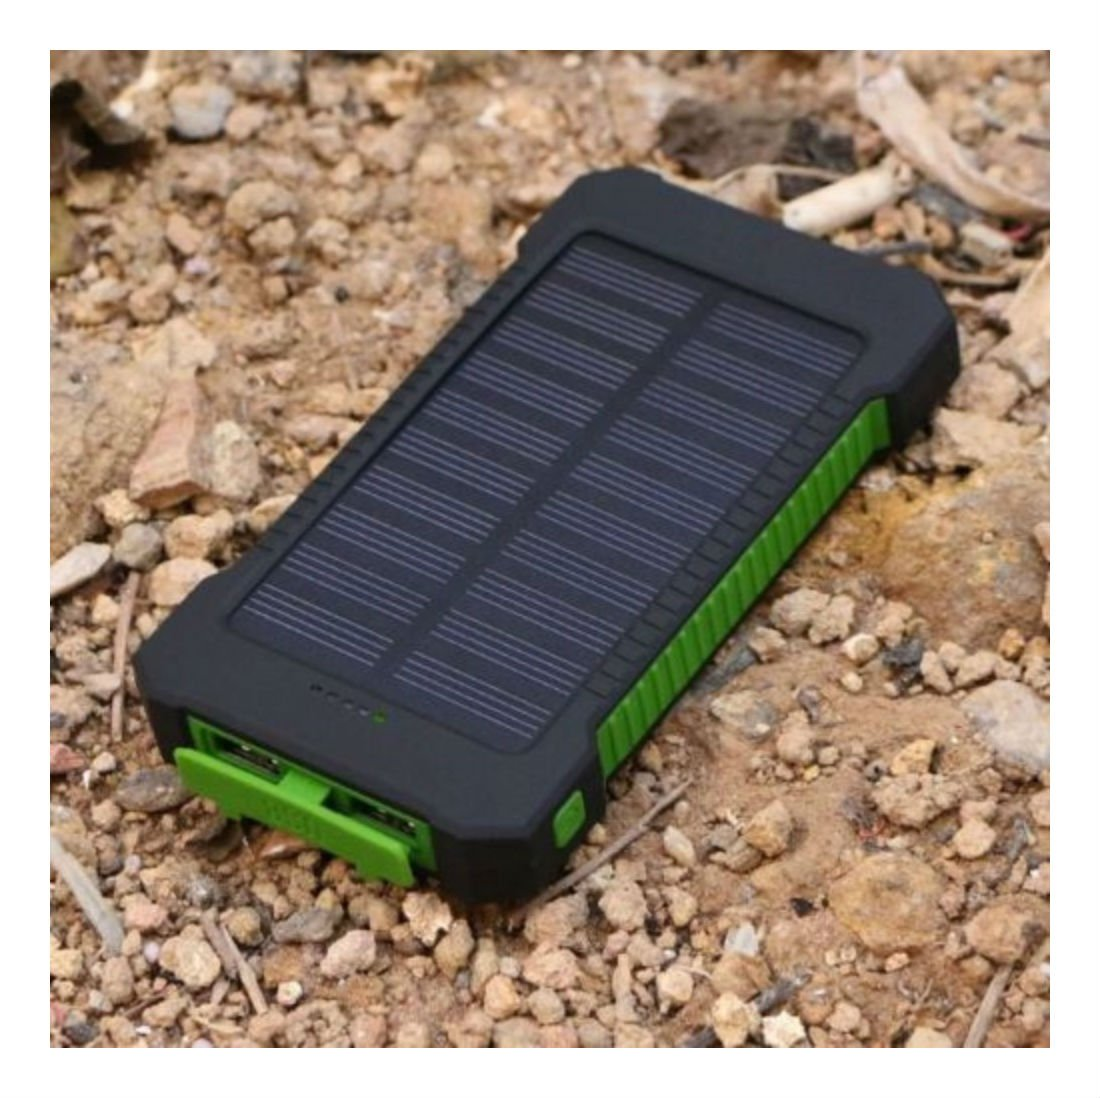 Black & Green Waterproof 500000mAh Dual USB Portable Solar Charger Solar Power Bank For Phone